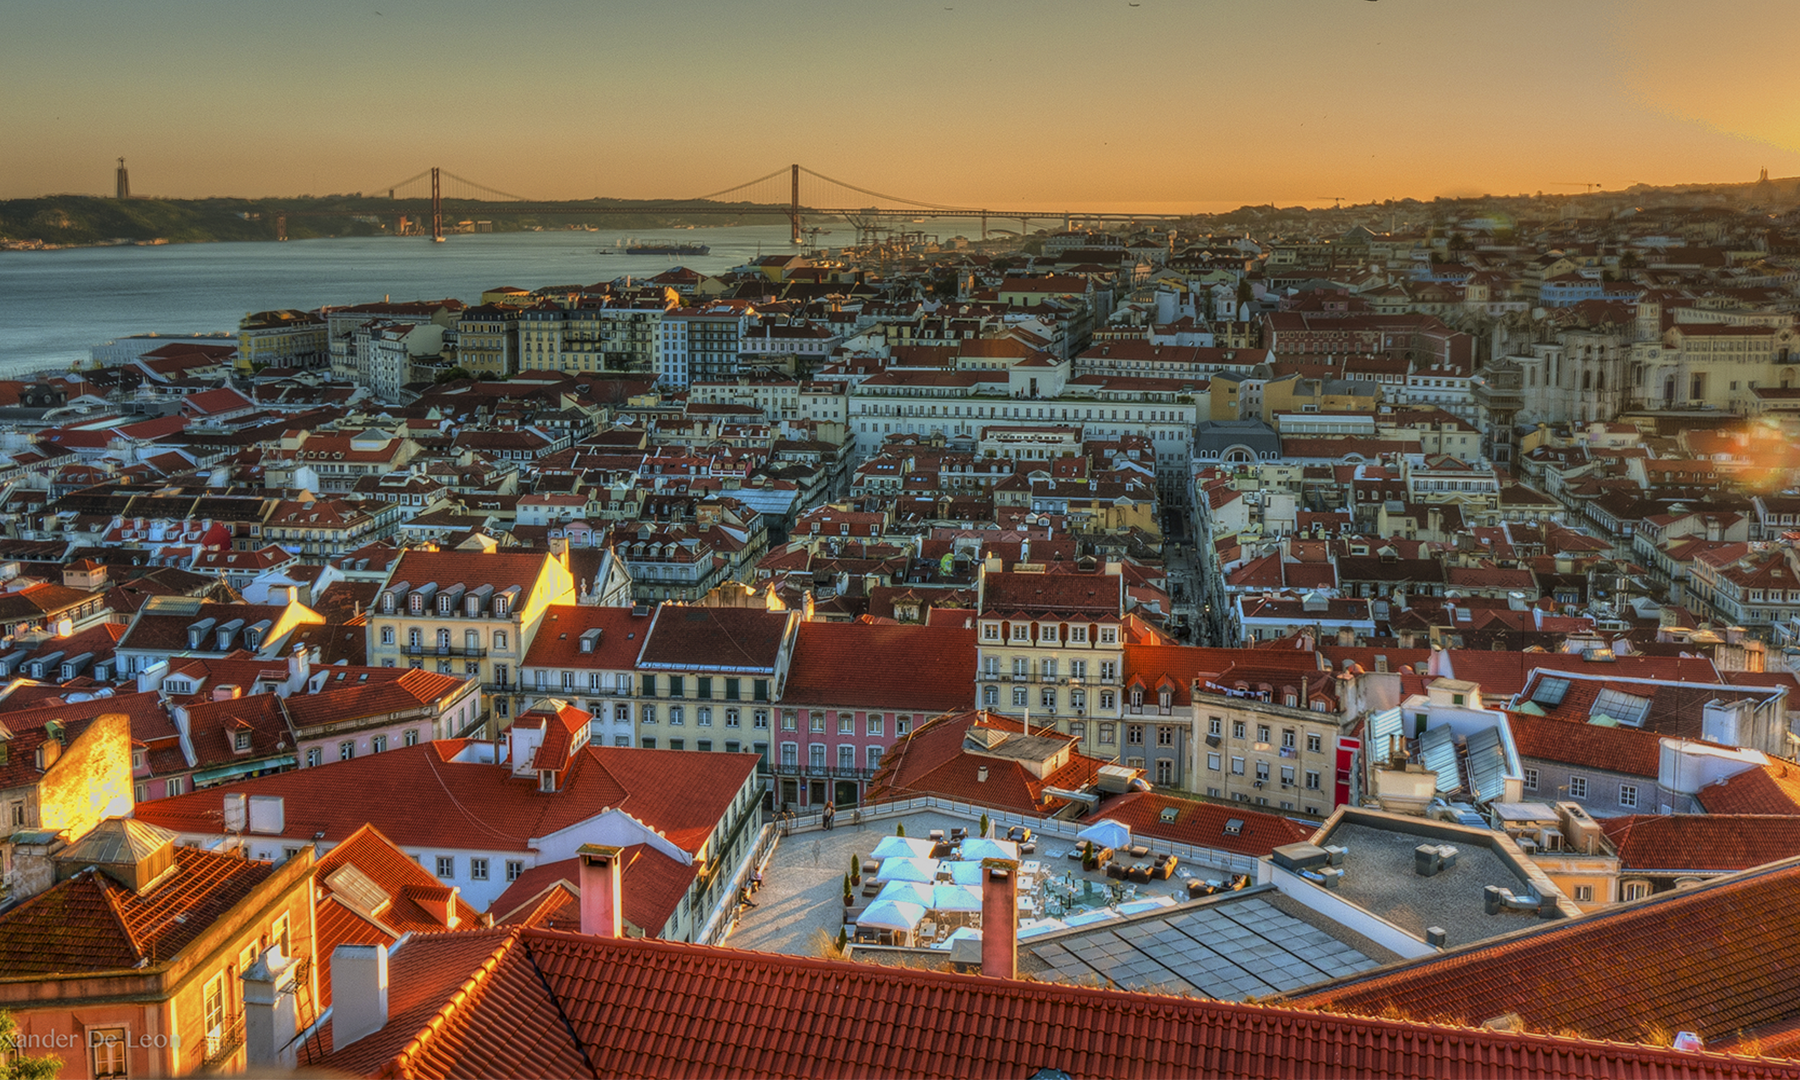 View of the capital city of Lisbon